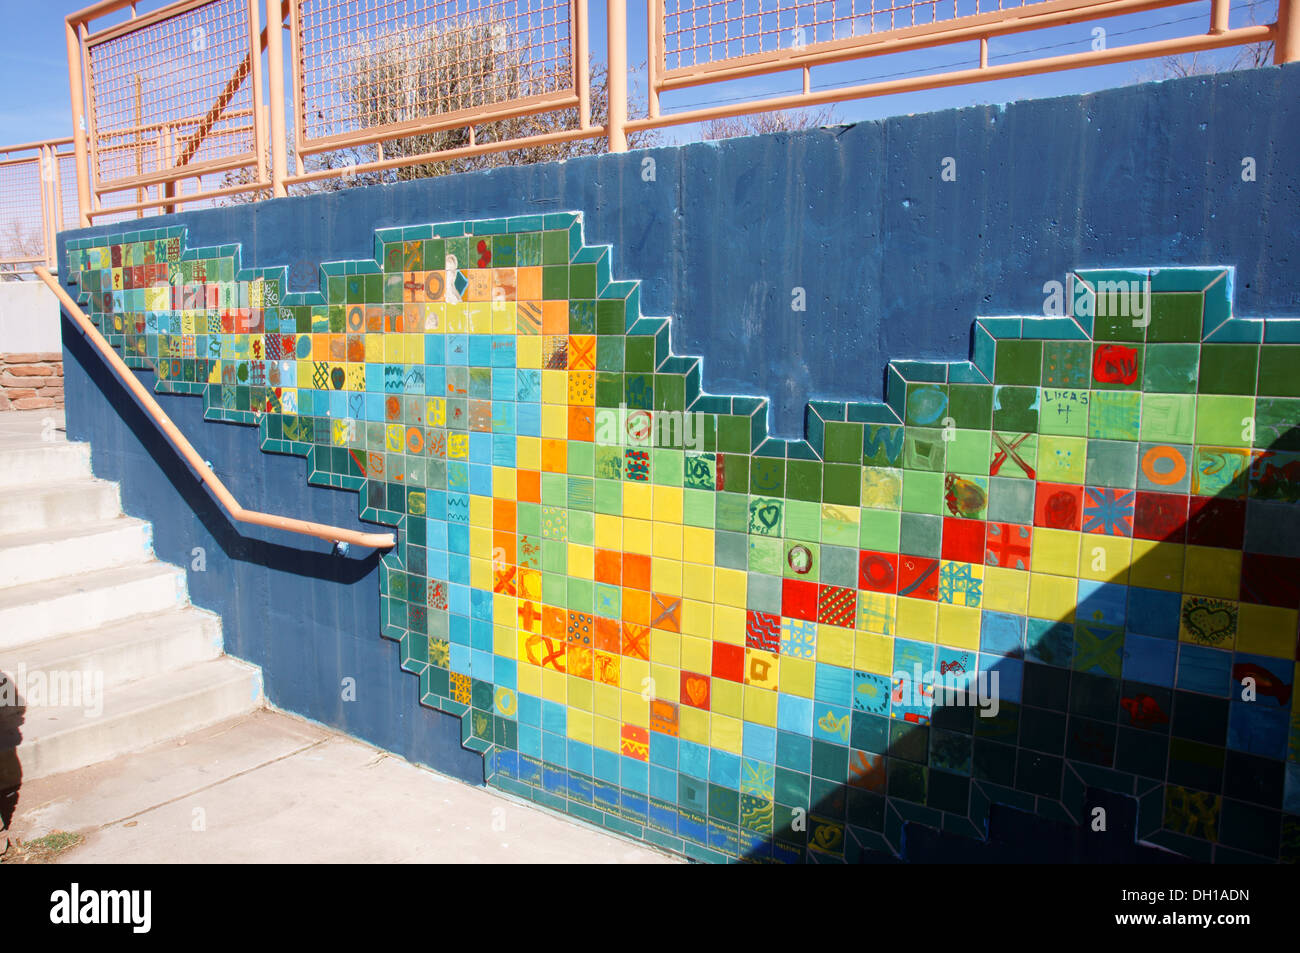 https www alamy com walkway stairs tiles colors colorful alto bicentennial walking park image62110433 html